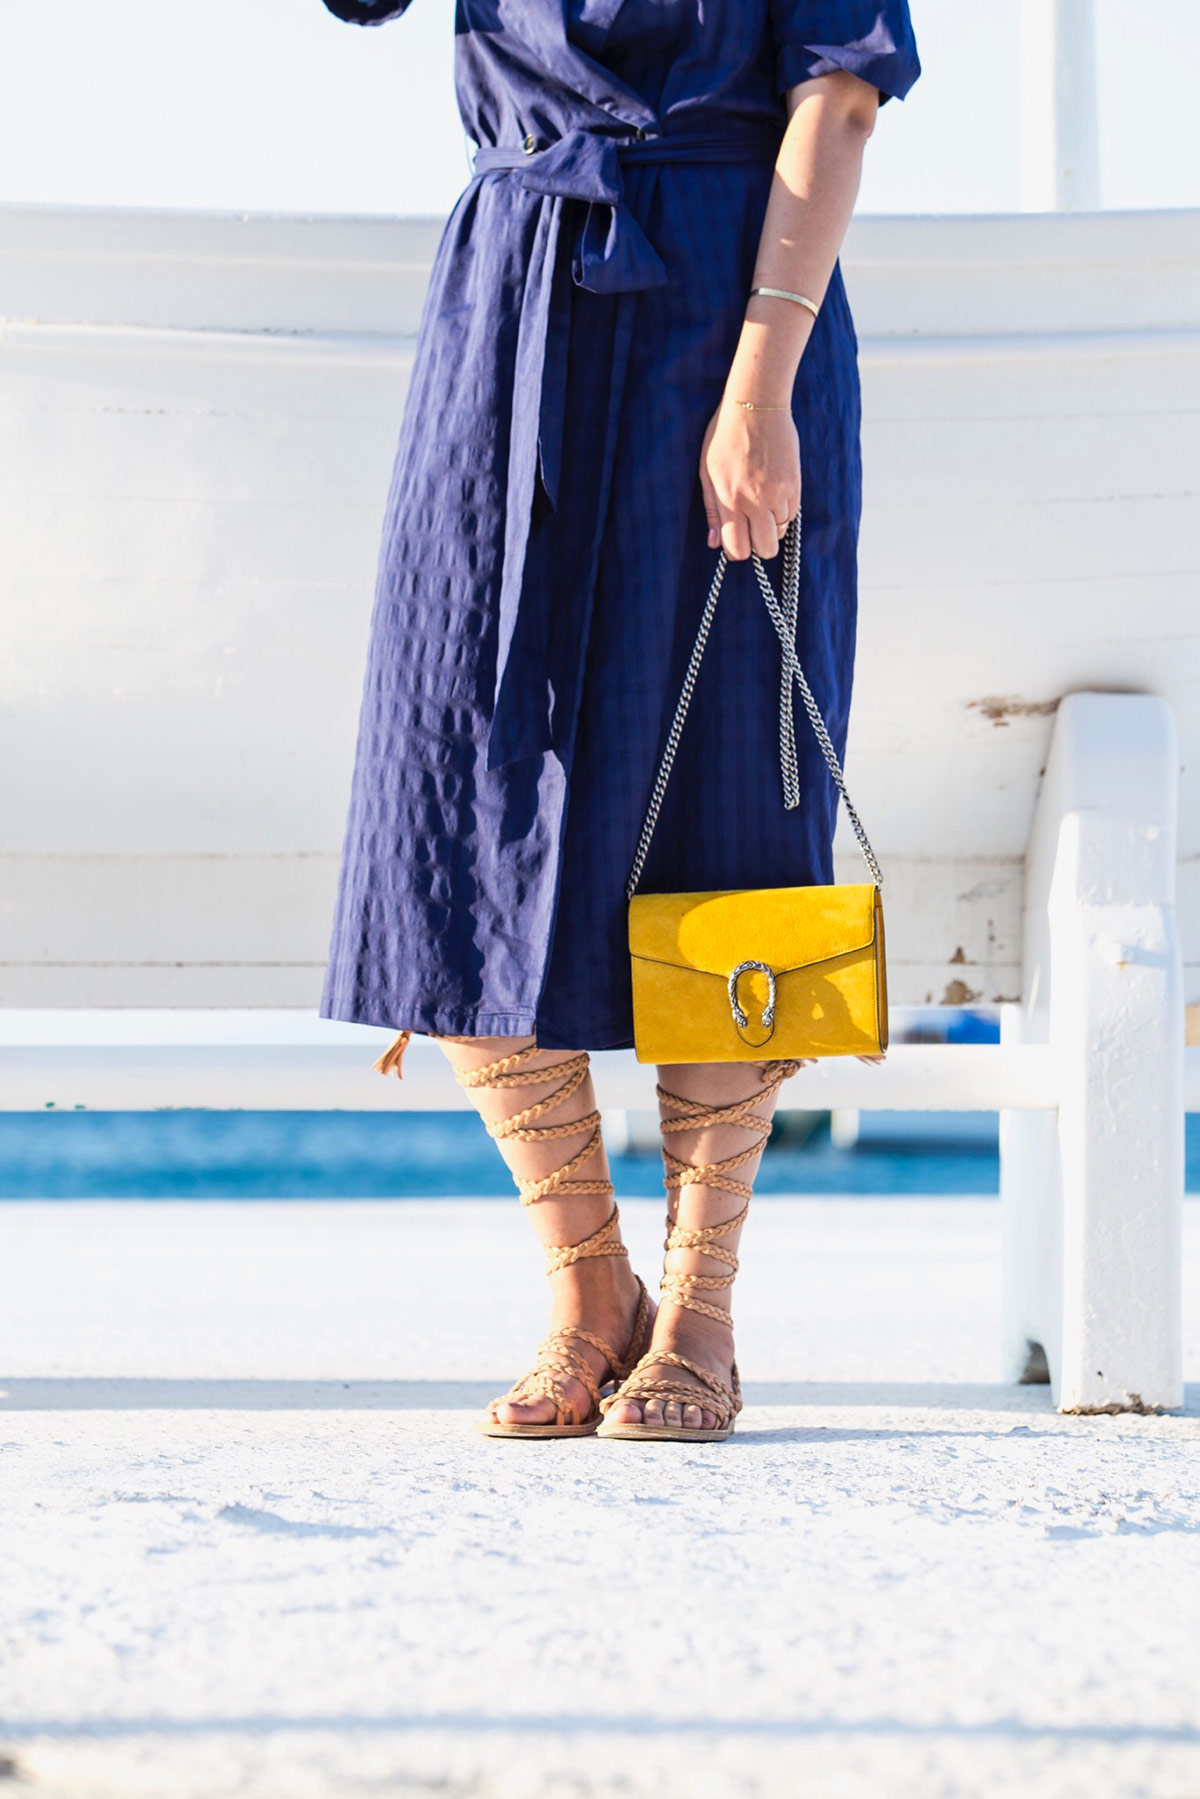 yellow Gucci Dionysus bag (chain wallet) and gladiator sandals by Stella Asteria | Fashion & Lifestyle Blogger